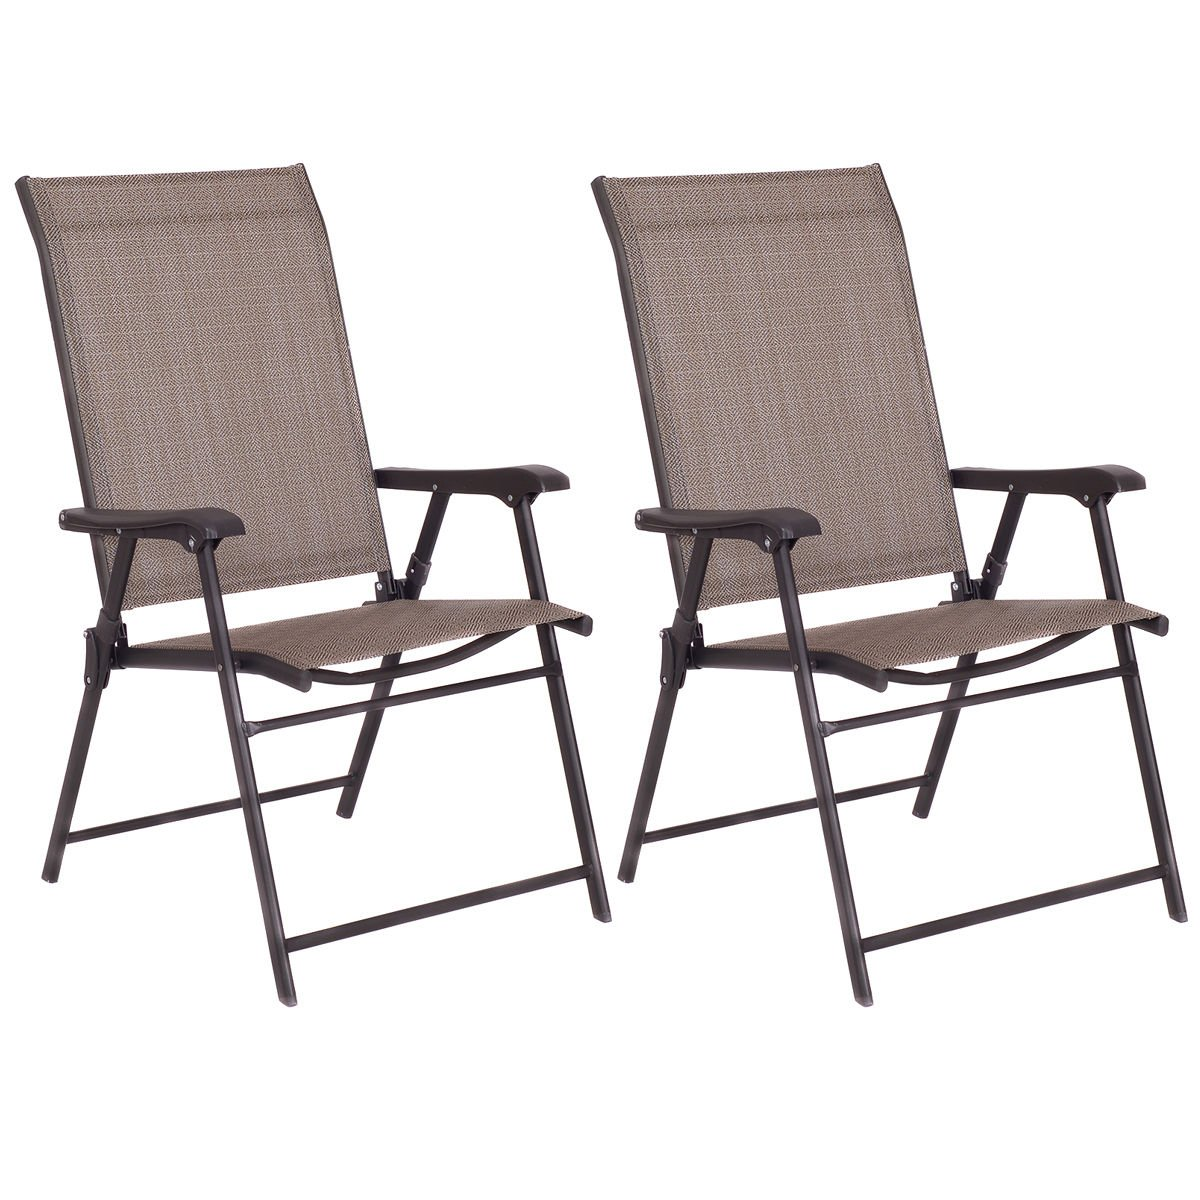 Set of 2 Patio Folding Sling Chairs Furniture Camping Deck Garden Pool Beach with Ebook